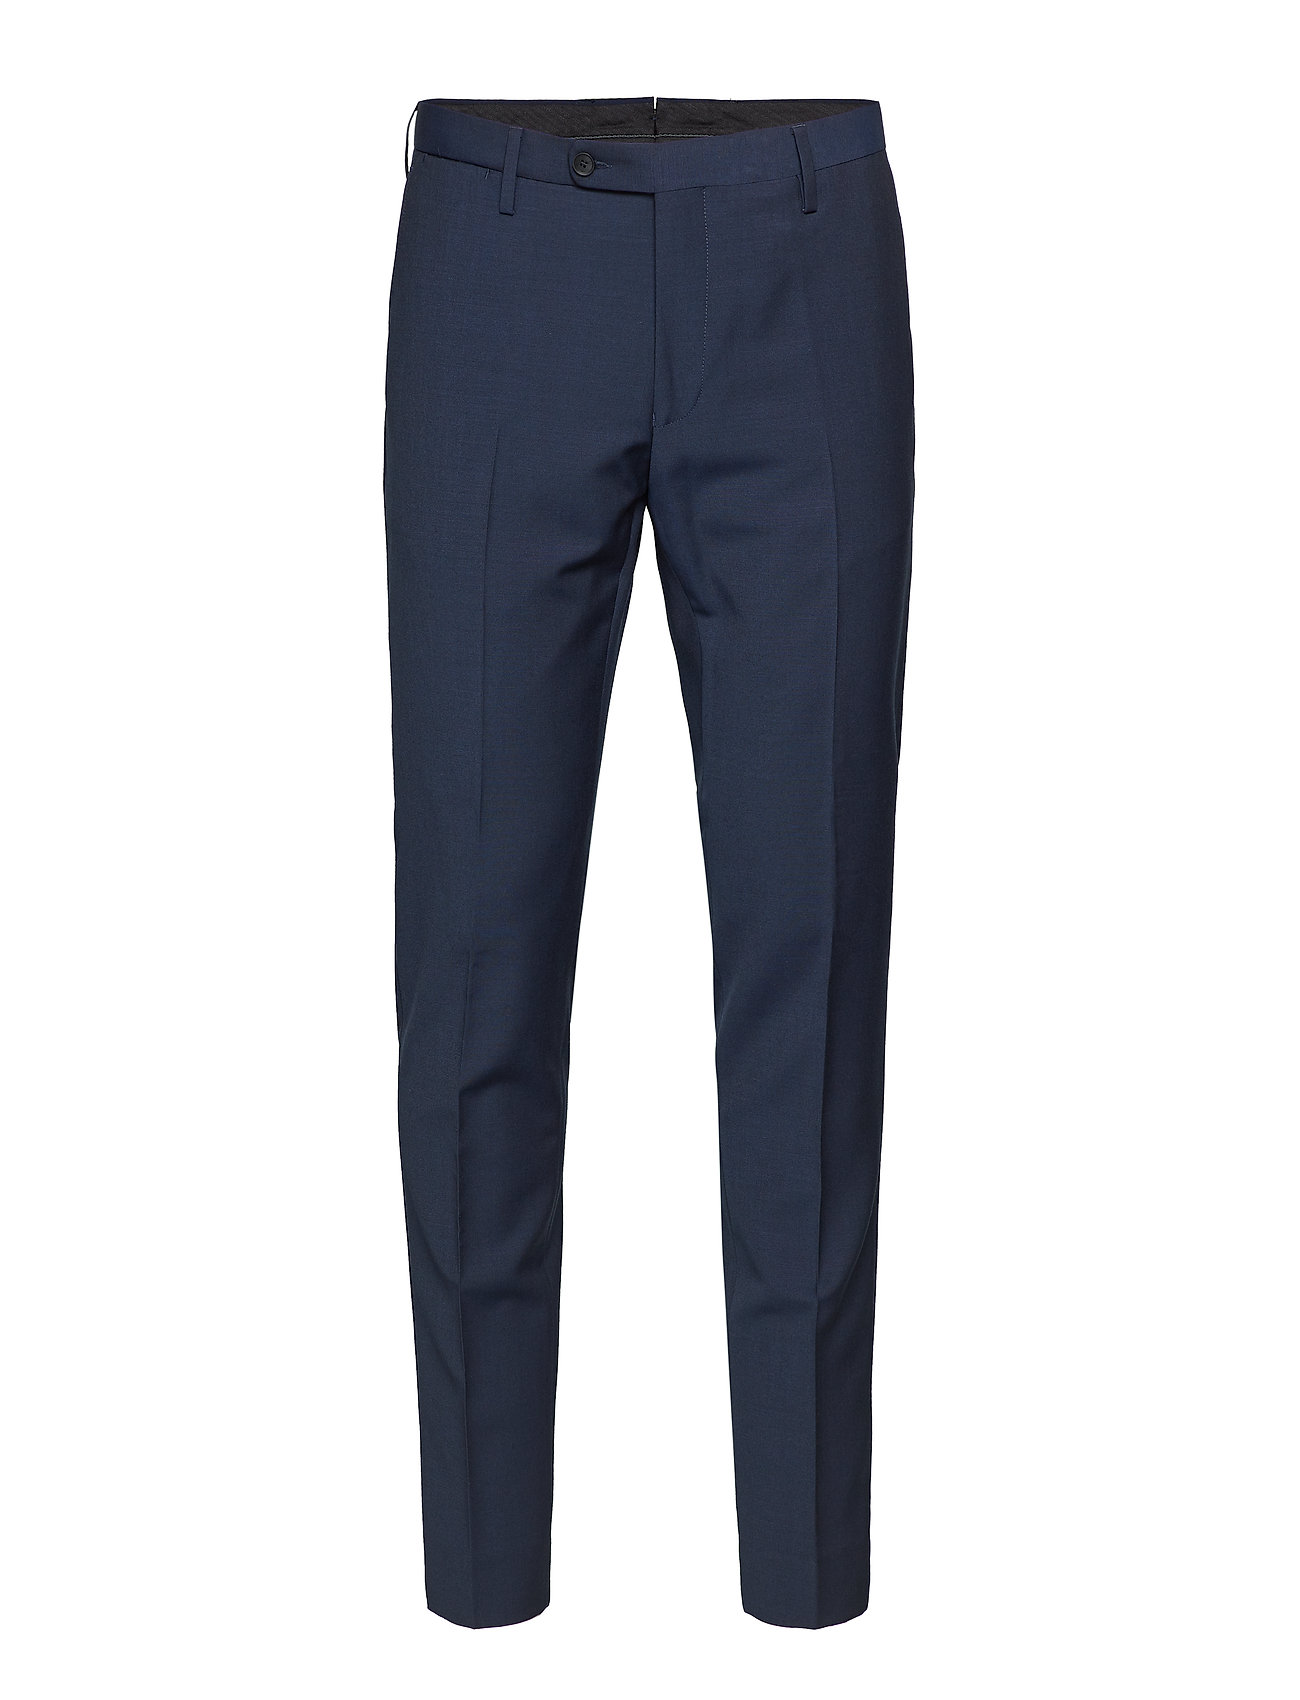 Gant THE TAILORED TRAVELERS SUIT PANT S - MARINE